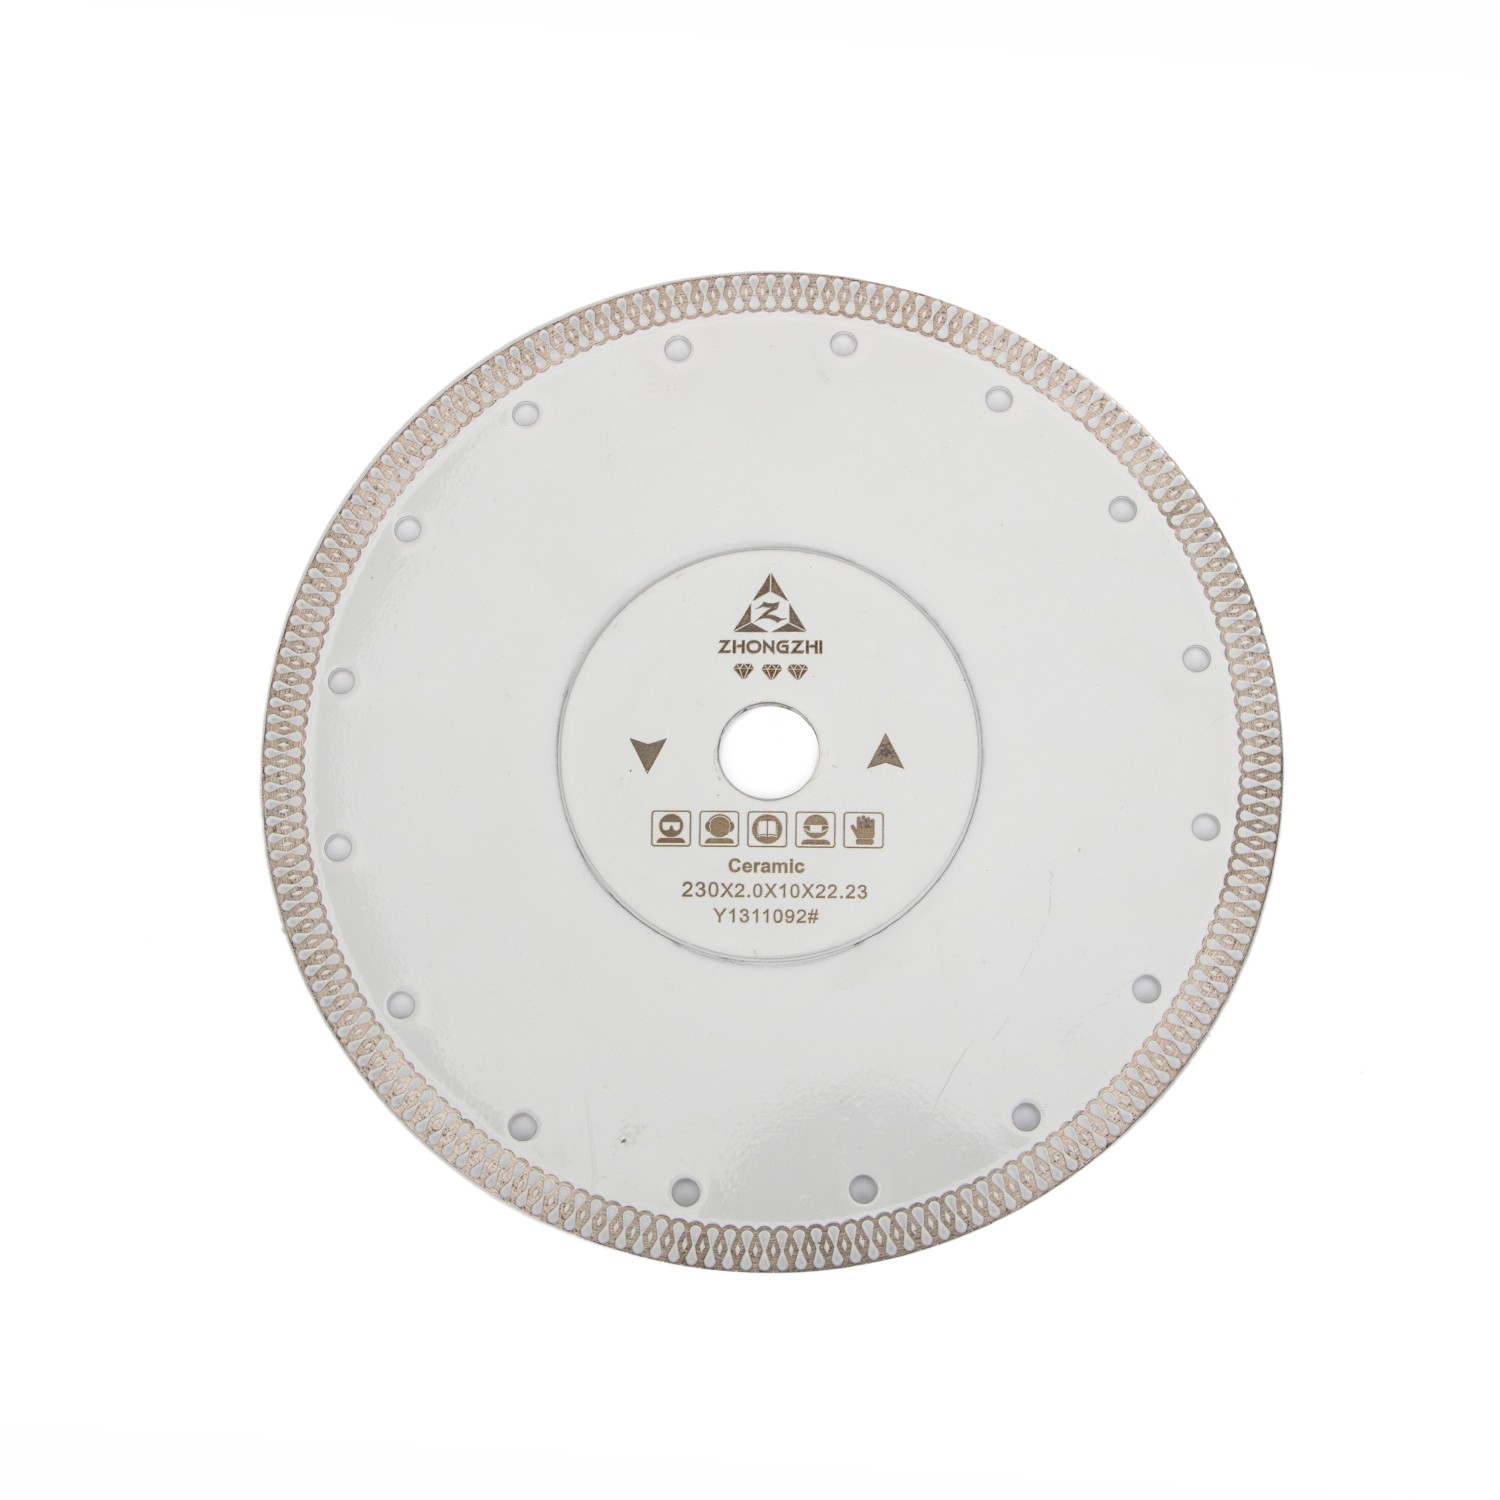 Cutting Tiles or Porcelain in Clean and Chip Free Fish Scale Type Diamond Blade